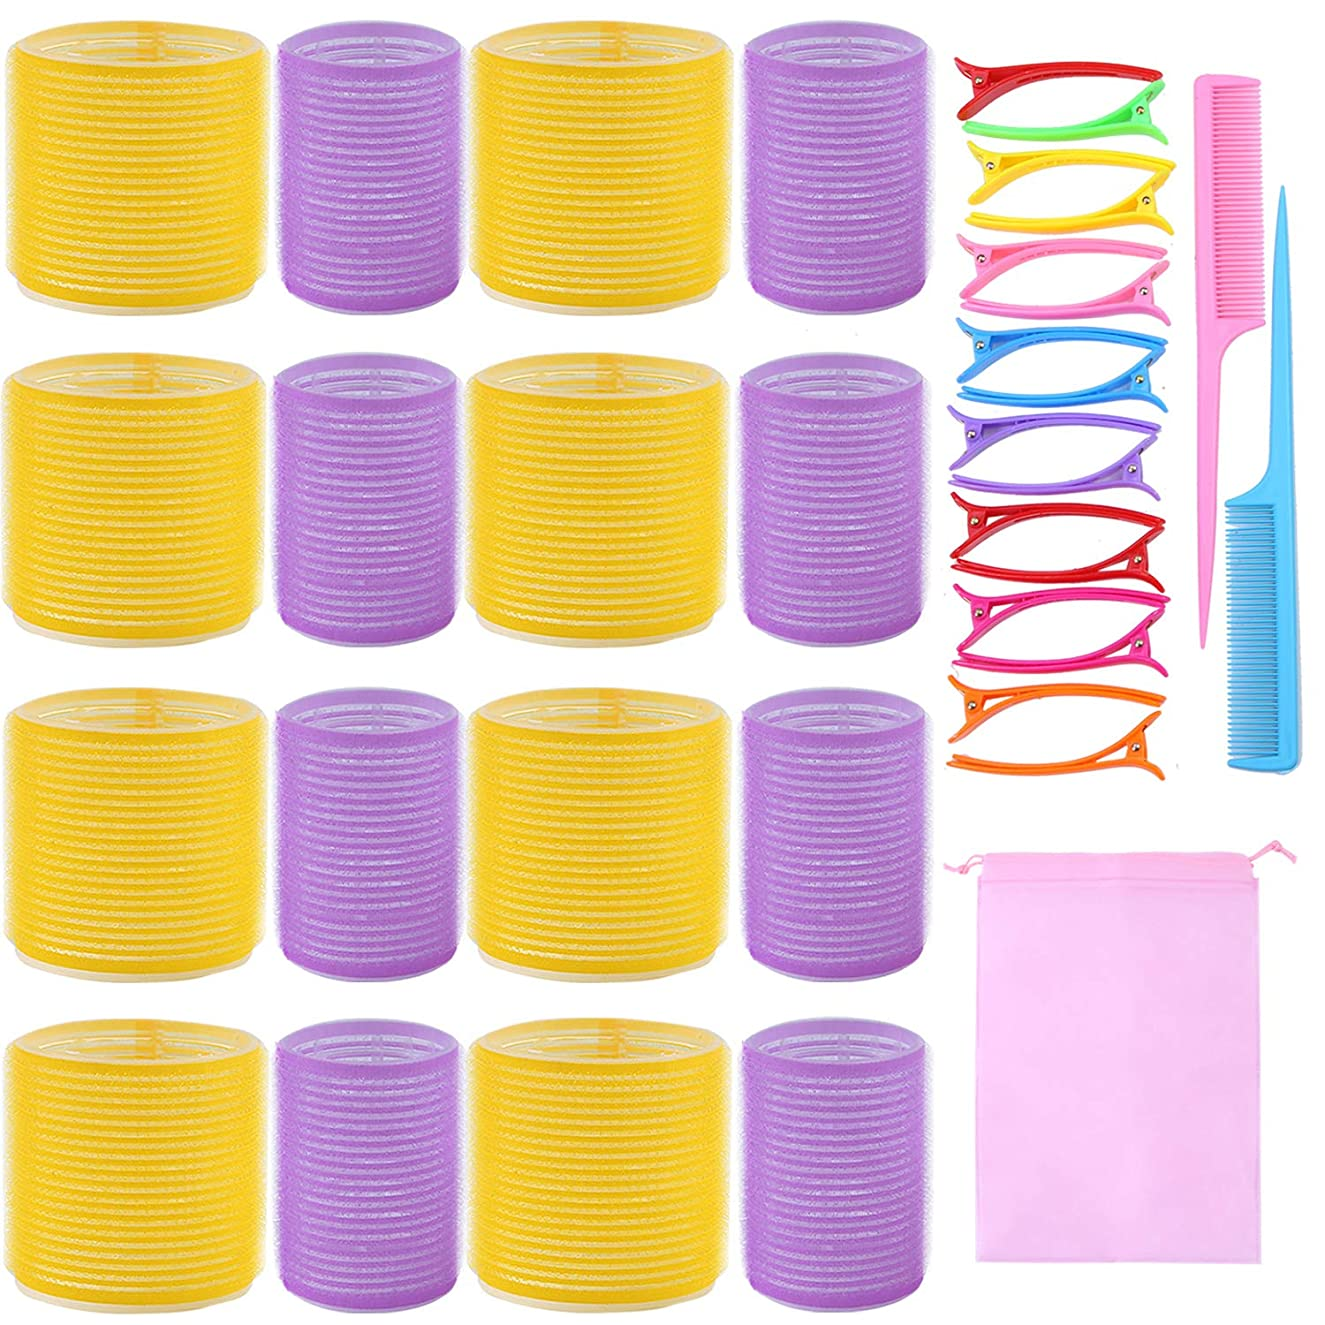 URATOT Jumbo Size Self Grip Hair Rollers Set 24 Rollers, 64mm and 44mm, 20 Duck Bill Clips, 2 Combs, 1 Storage Bag, Hairdo Tools for Adults and Kids